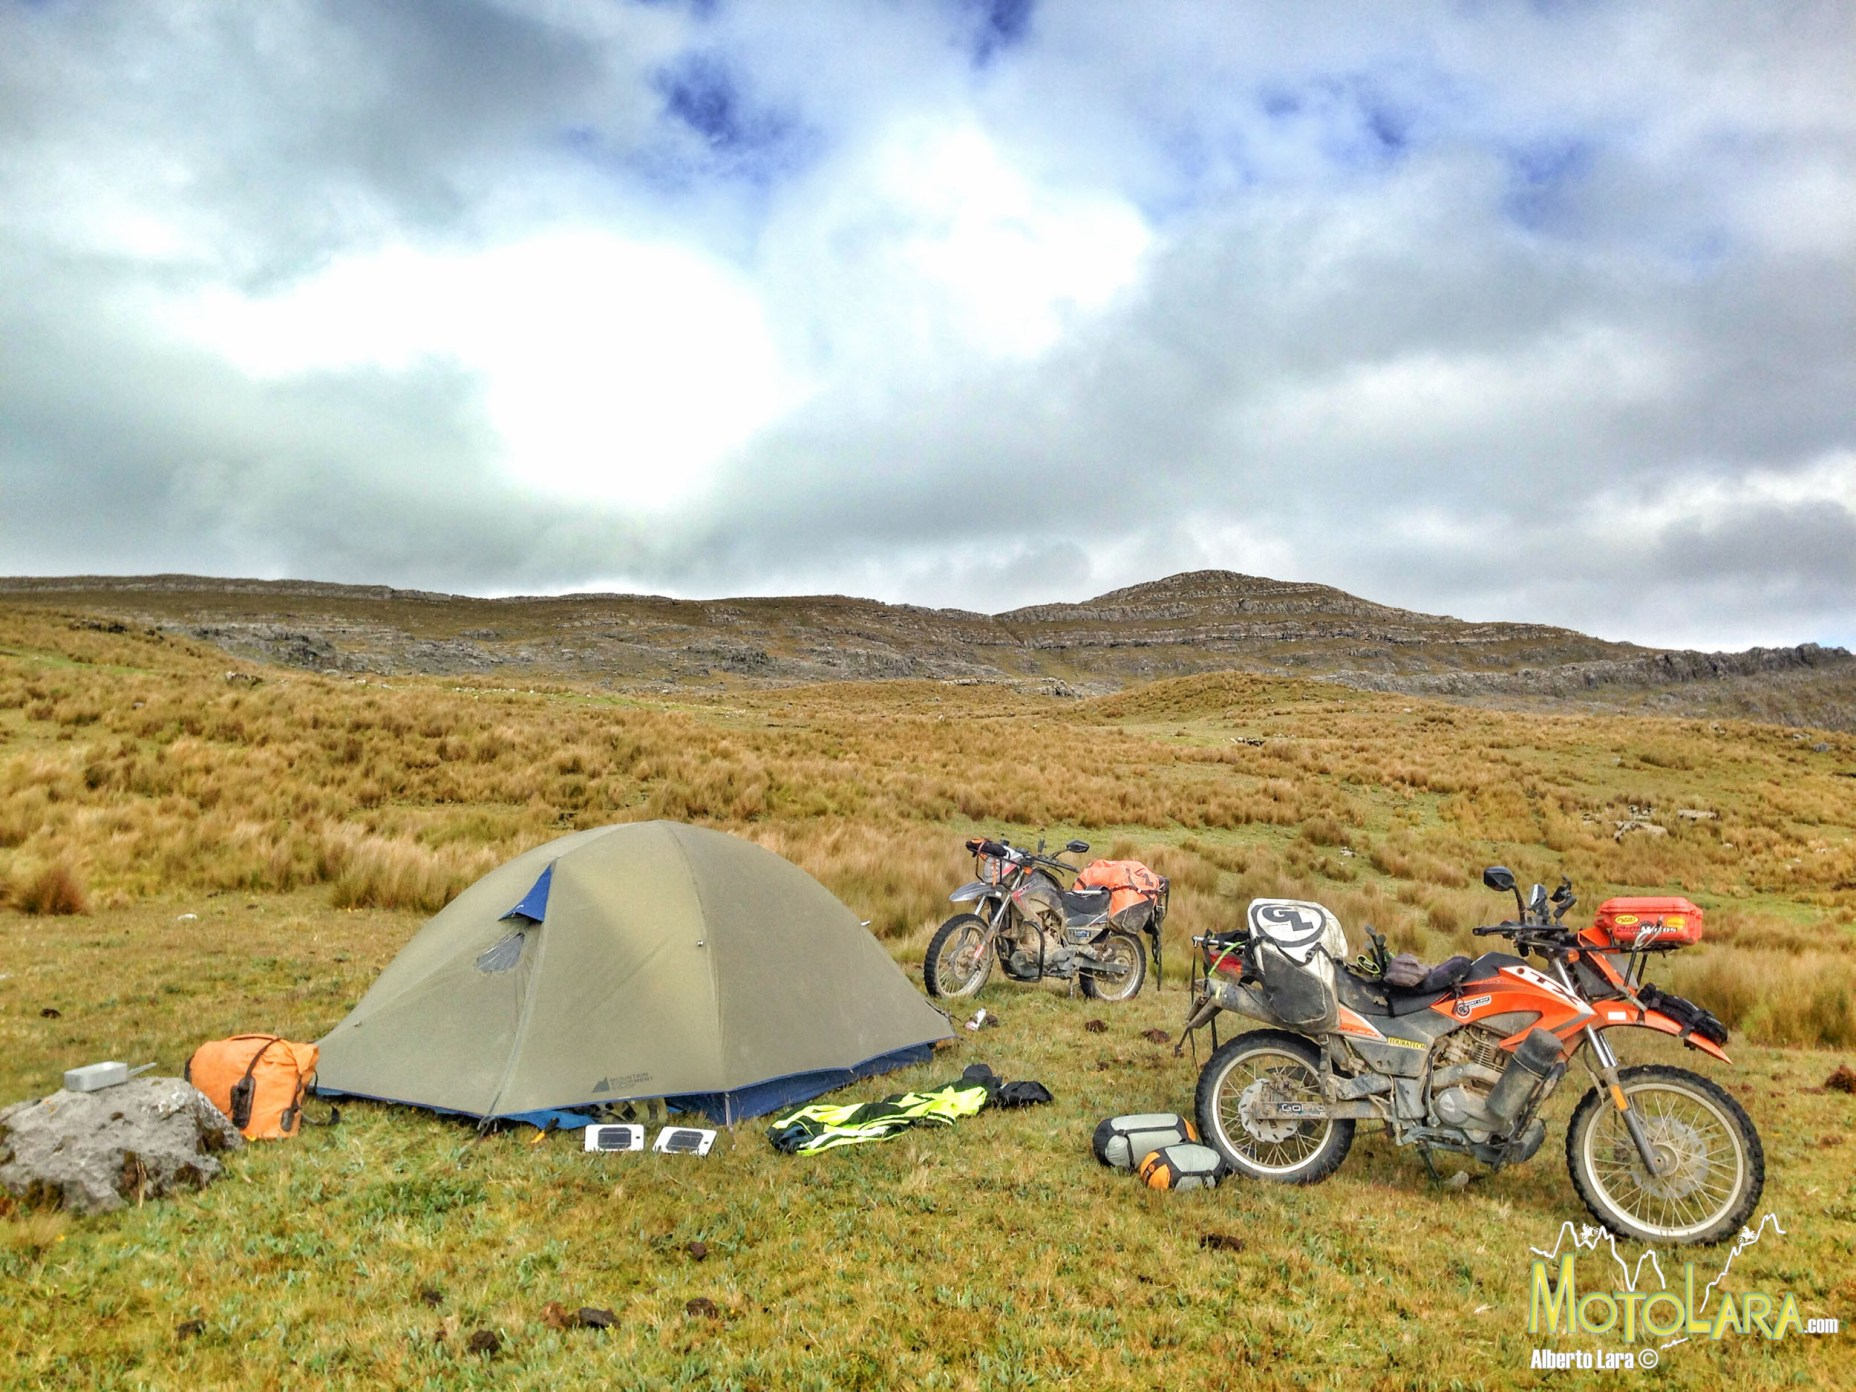 Camping on a wet field